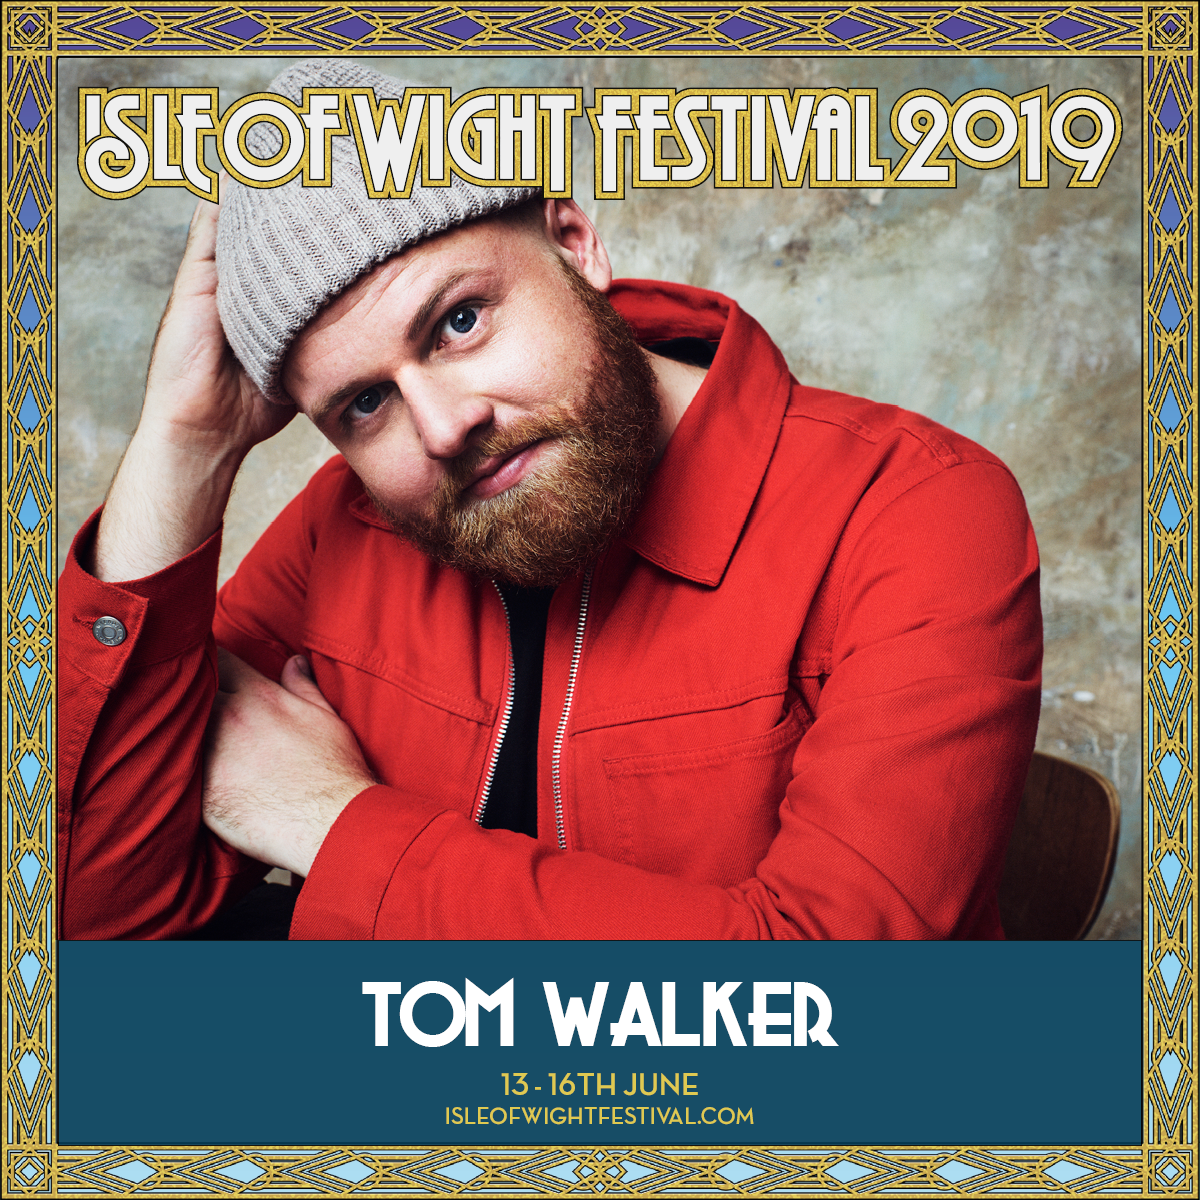 TOM WALKER RELEASES DEBUT ALBUM 'WHAT A TIME TO BE ALIVE' - Isle of